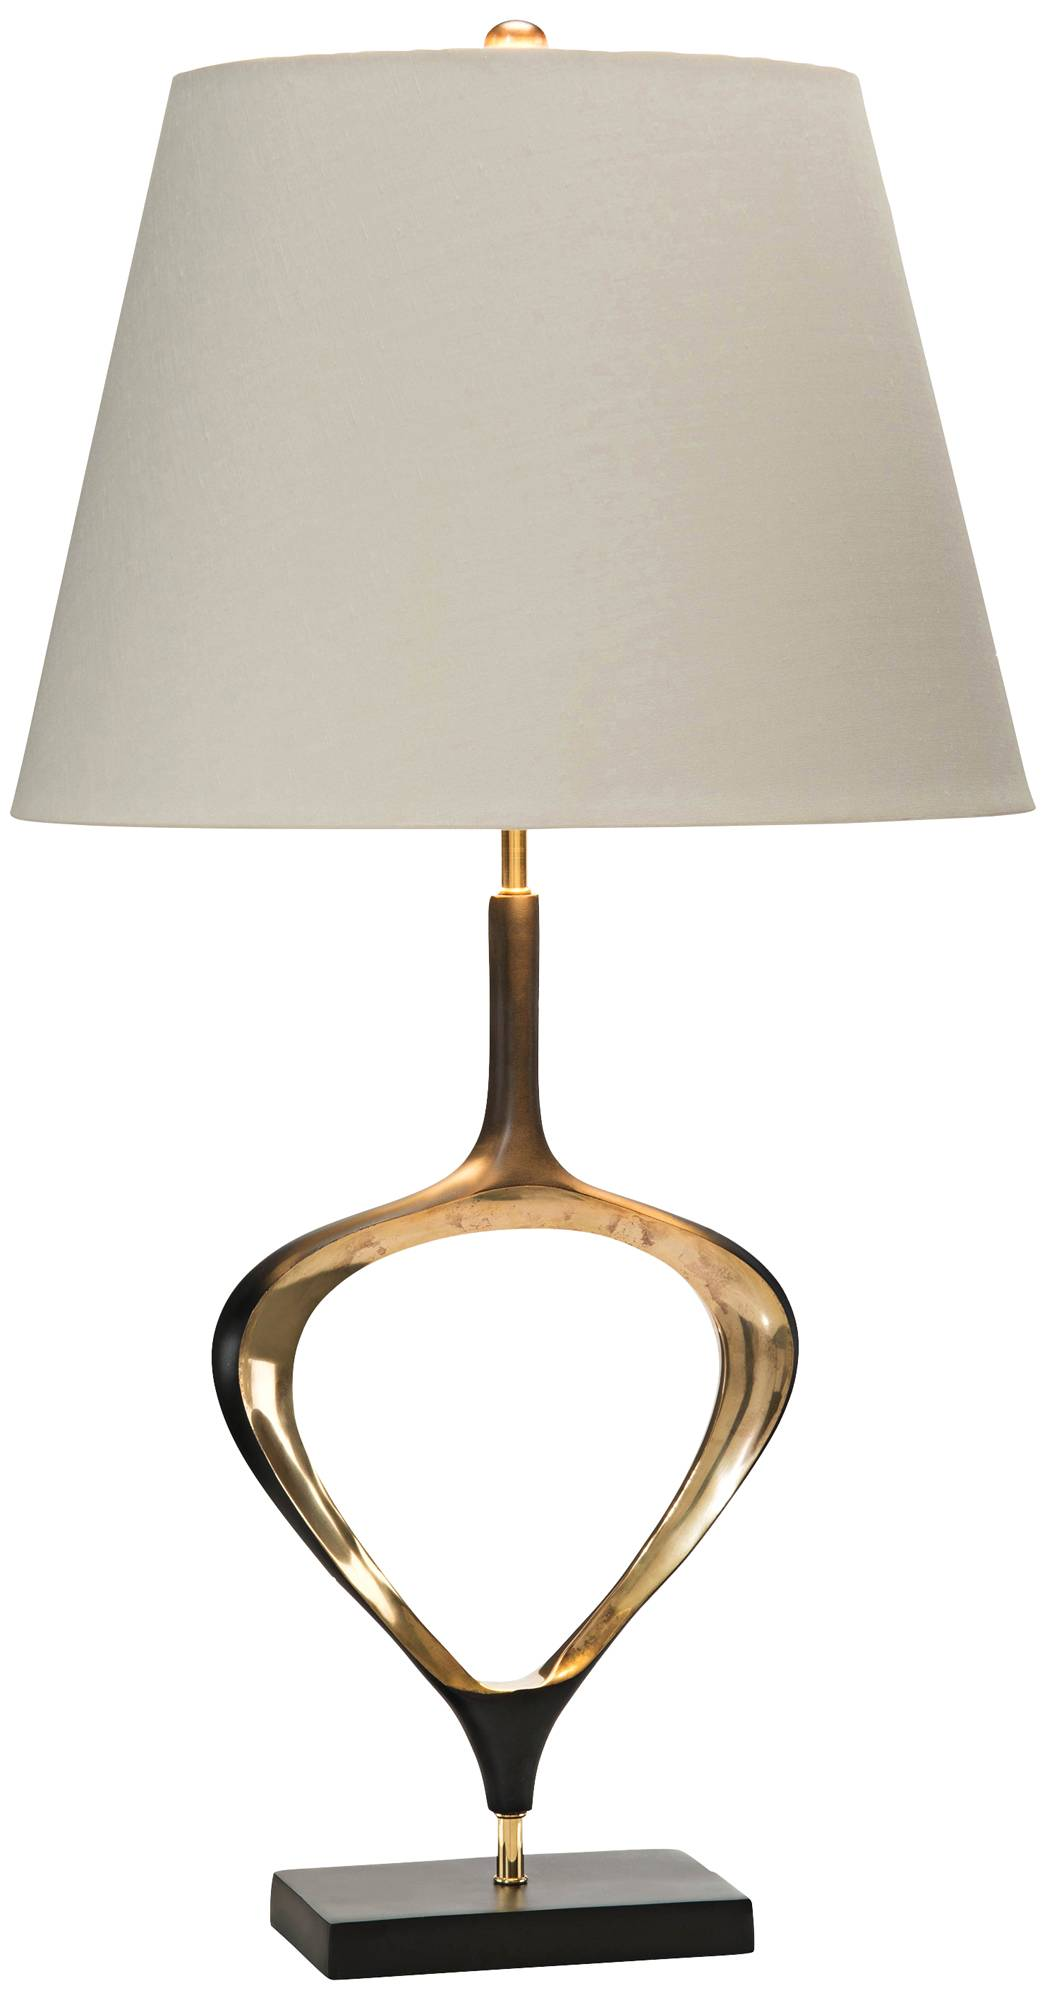 John richard aged antique brass open teardrop table lamp